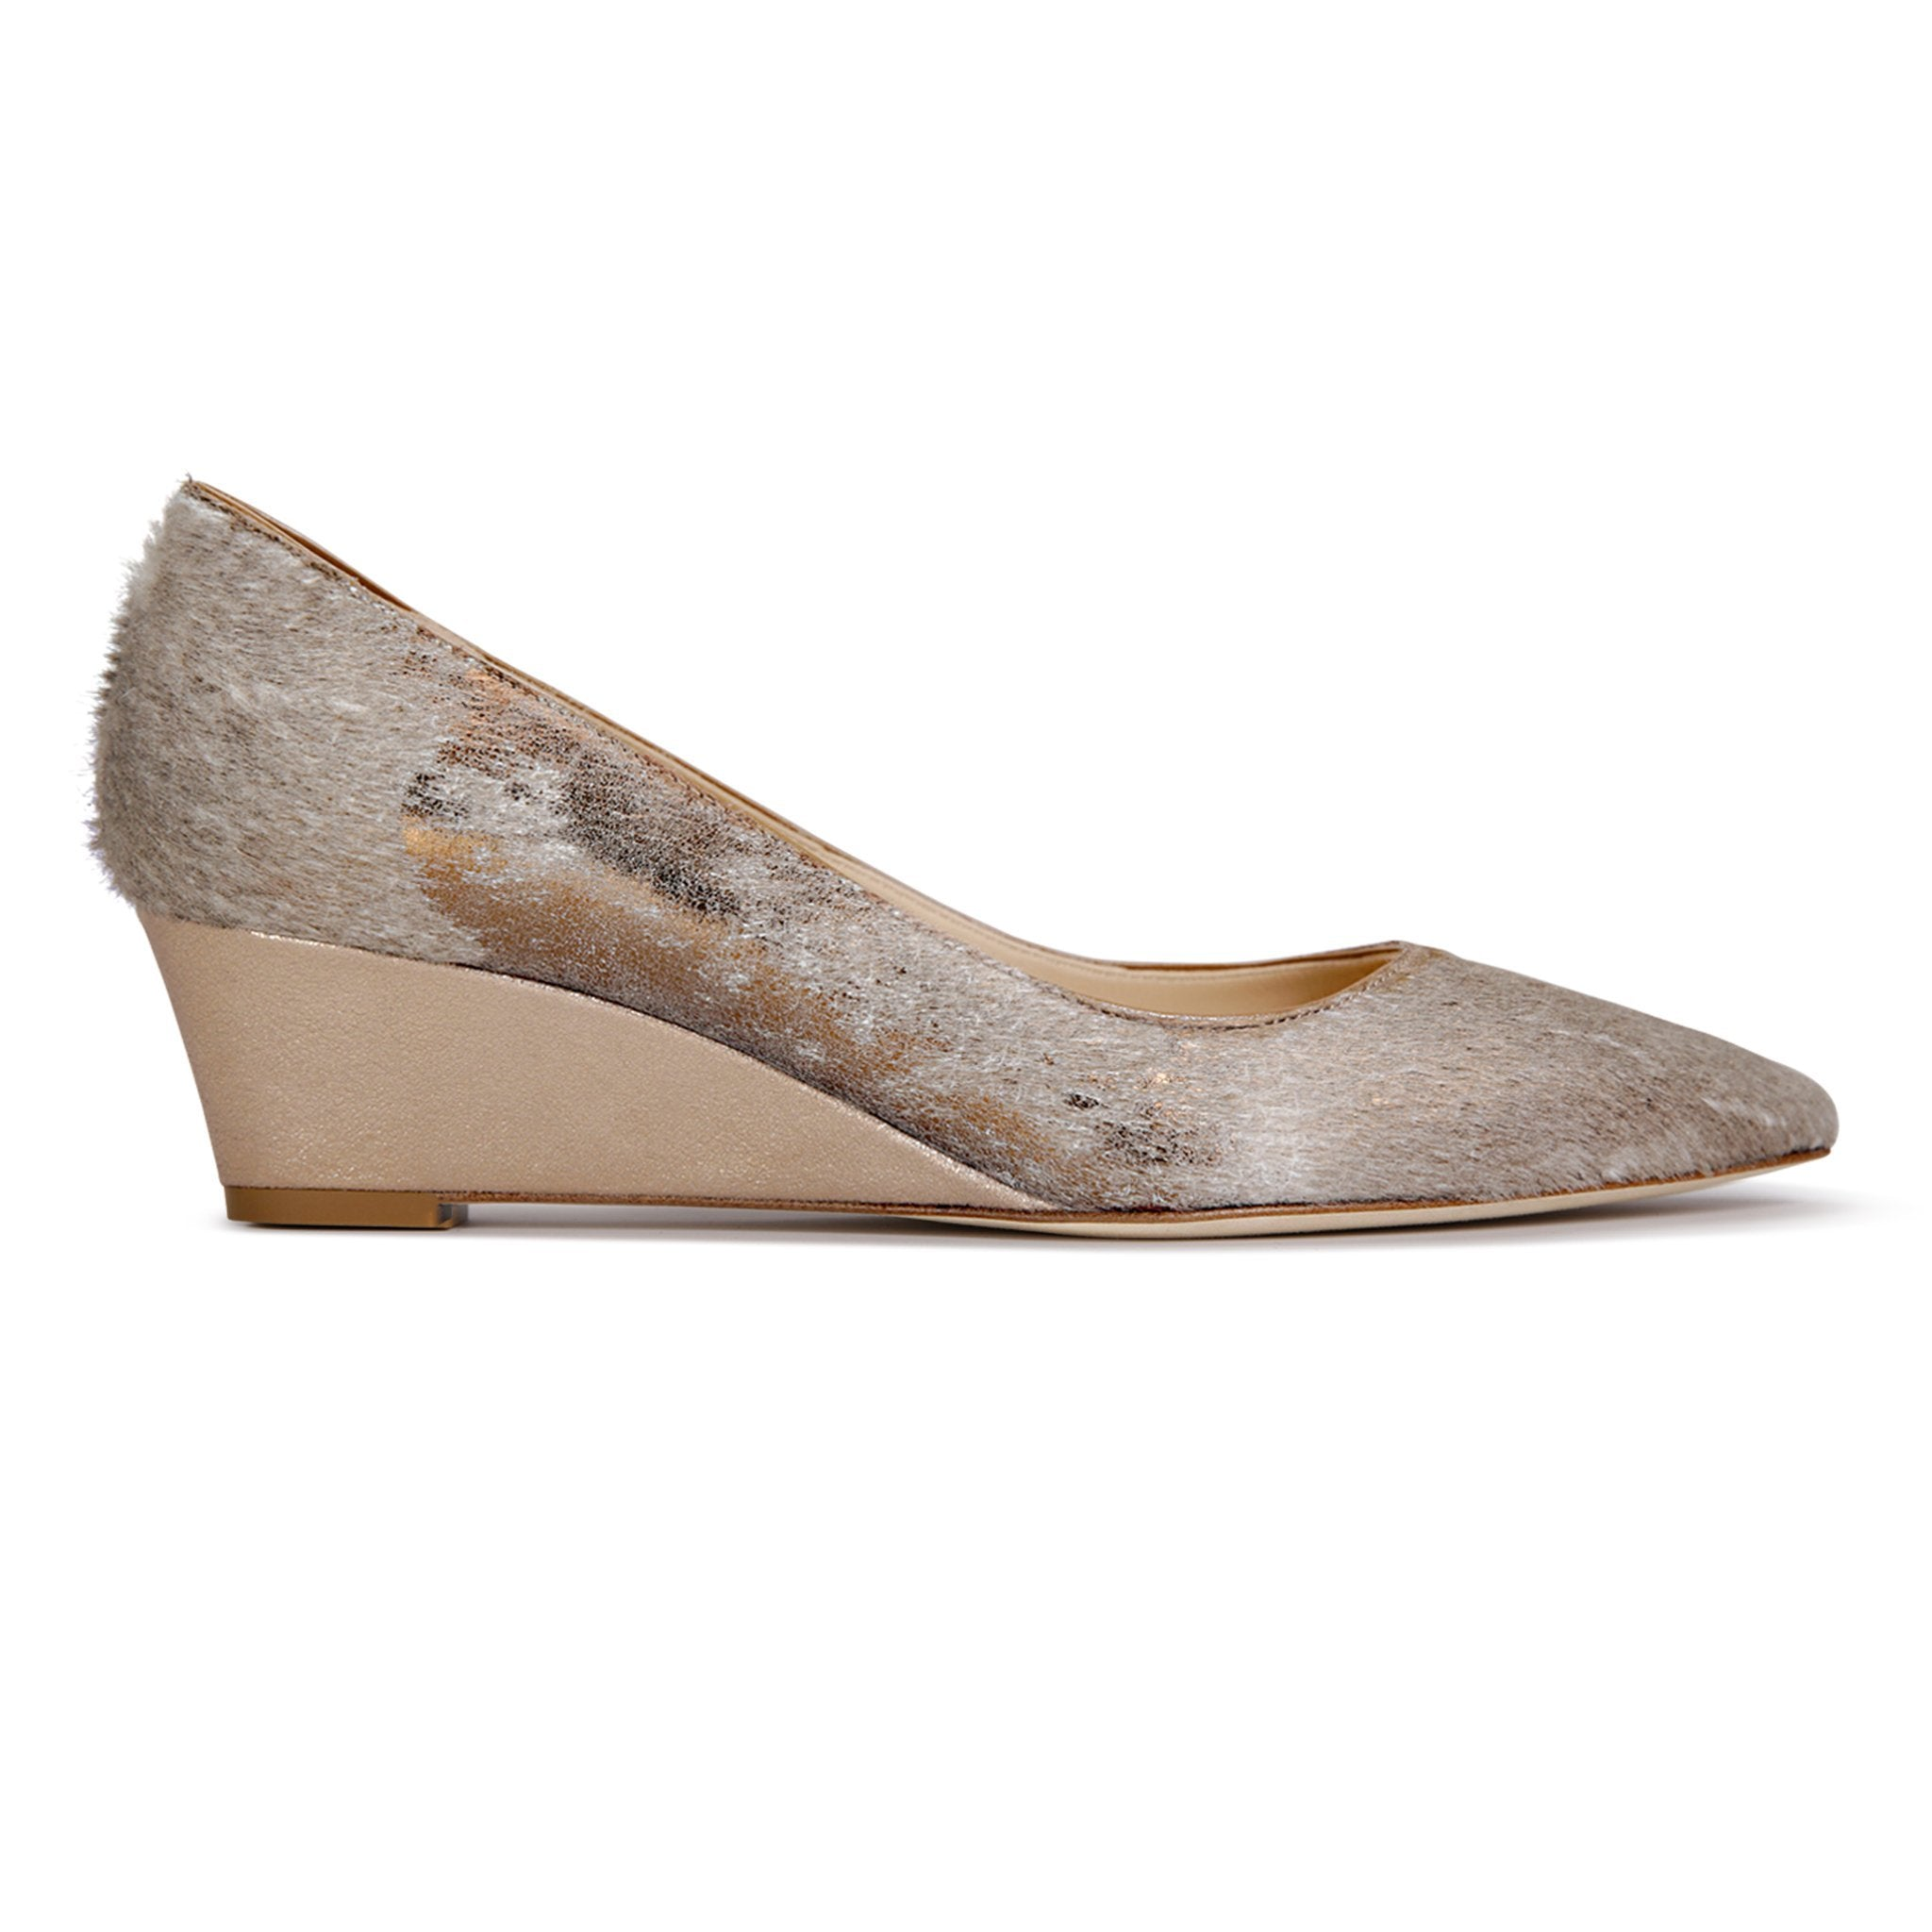 TRENTO - Calf Hair Vintage Copper + Burma Sabbia, VIAJIYU - Women's Hand Made Sustainable Luxury Shoes. Made in Italy. Made to Order.